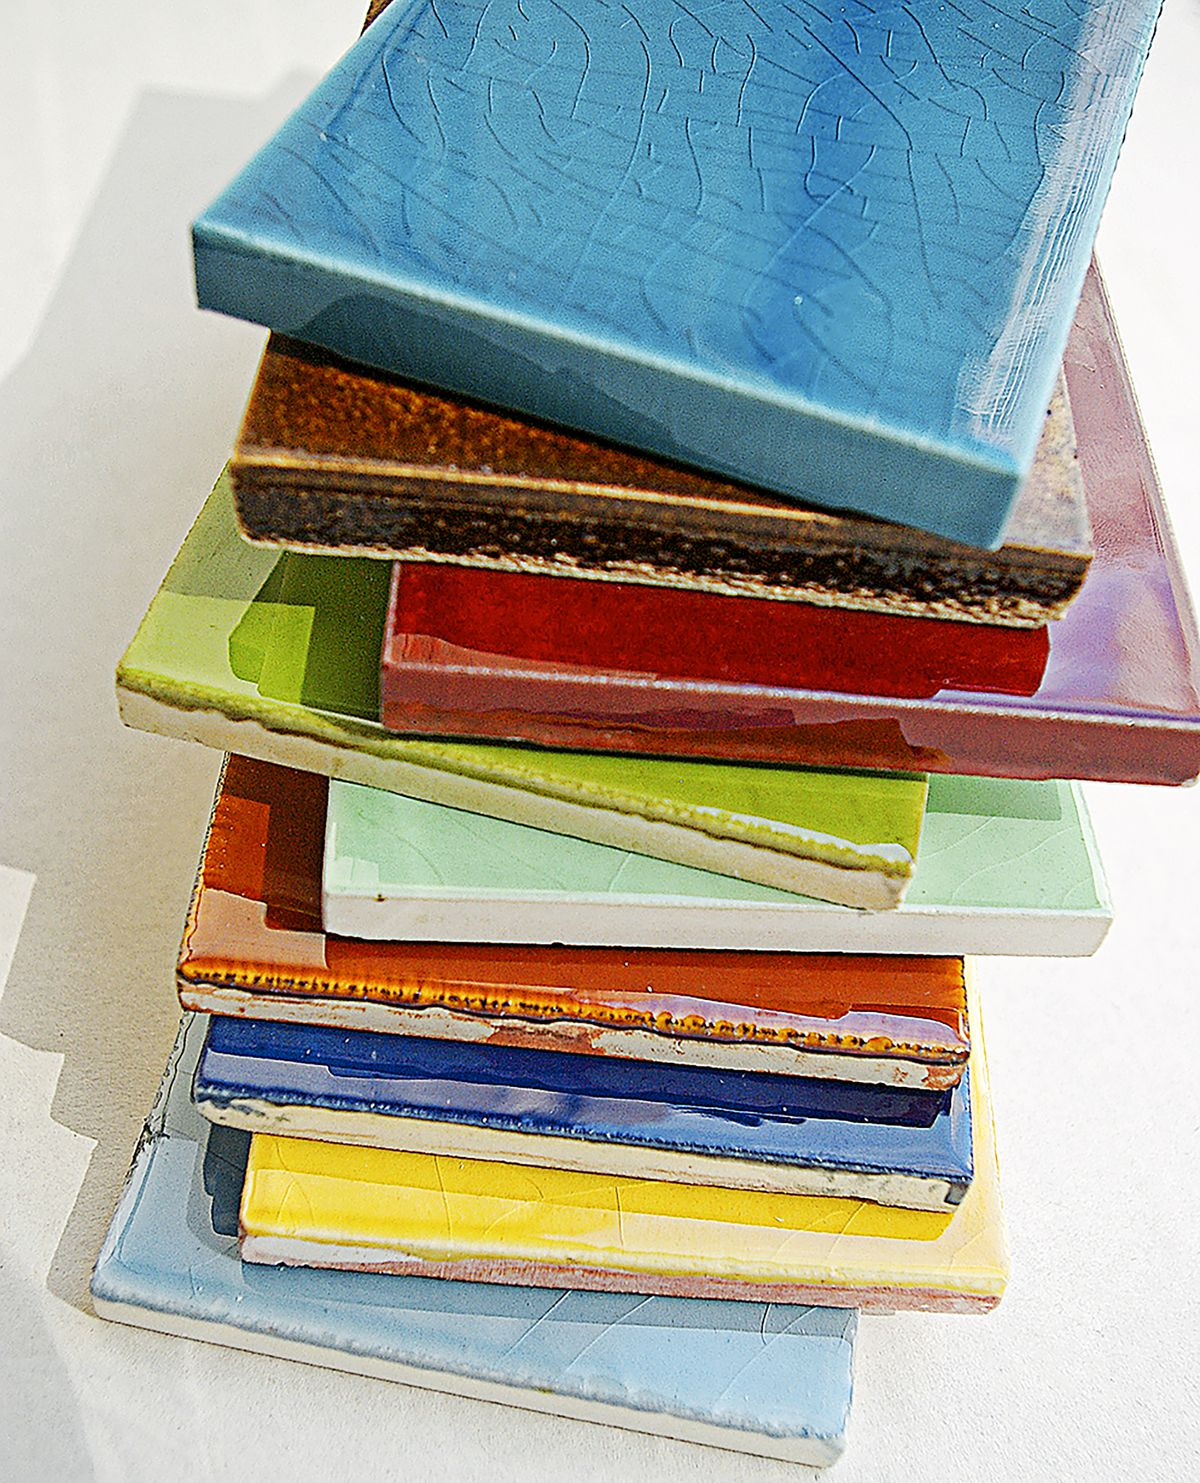 A Stack Of Ceramic Subway Tiles in Many Colors.